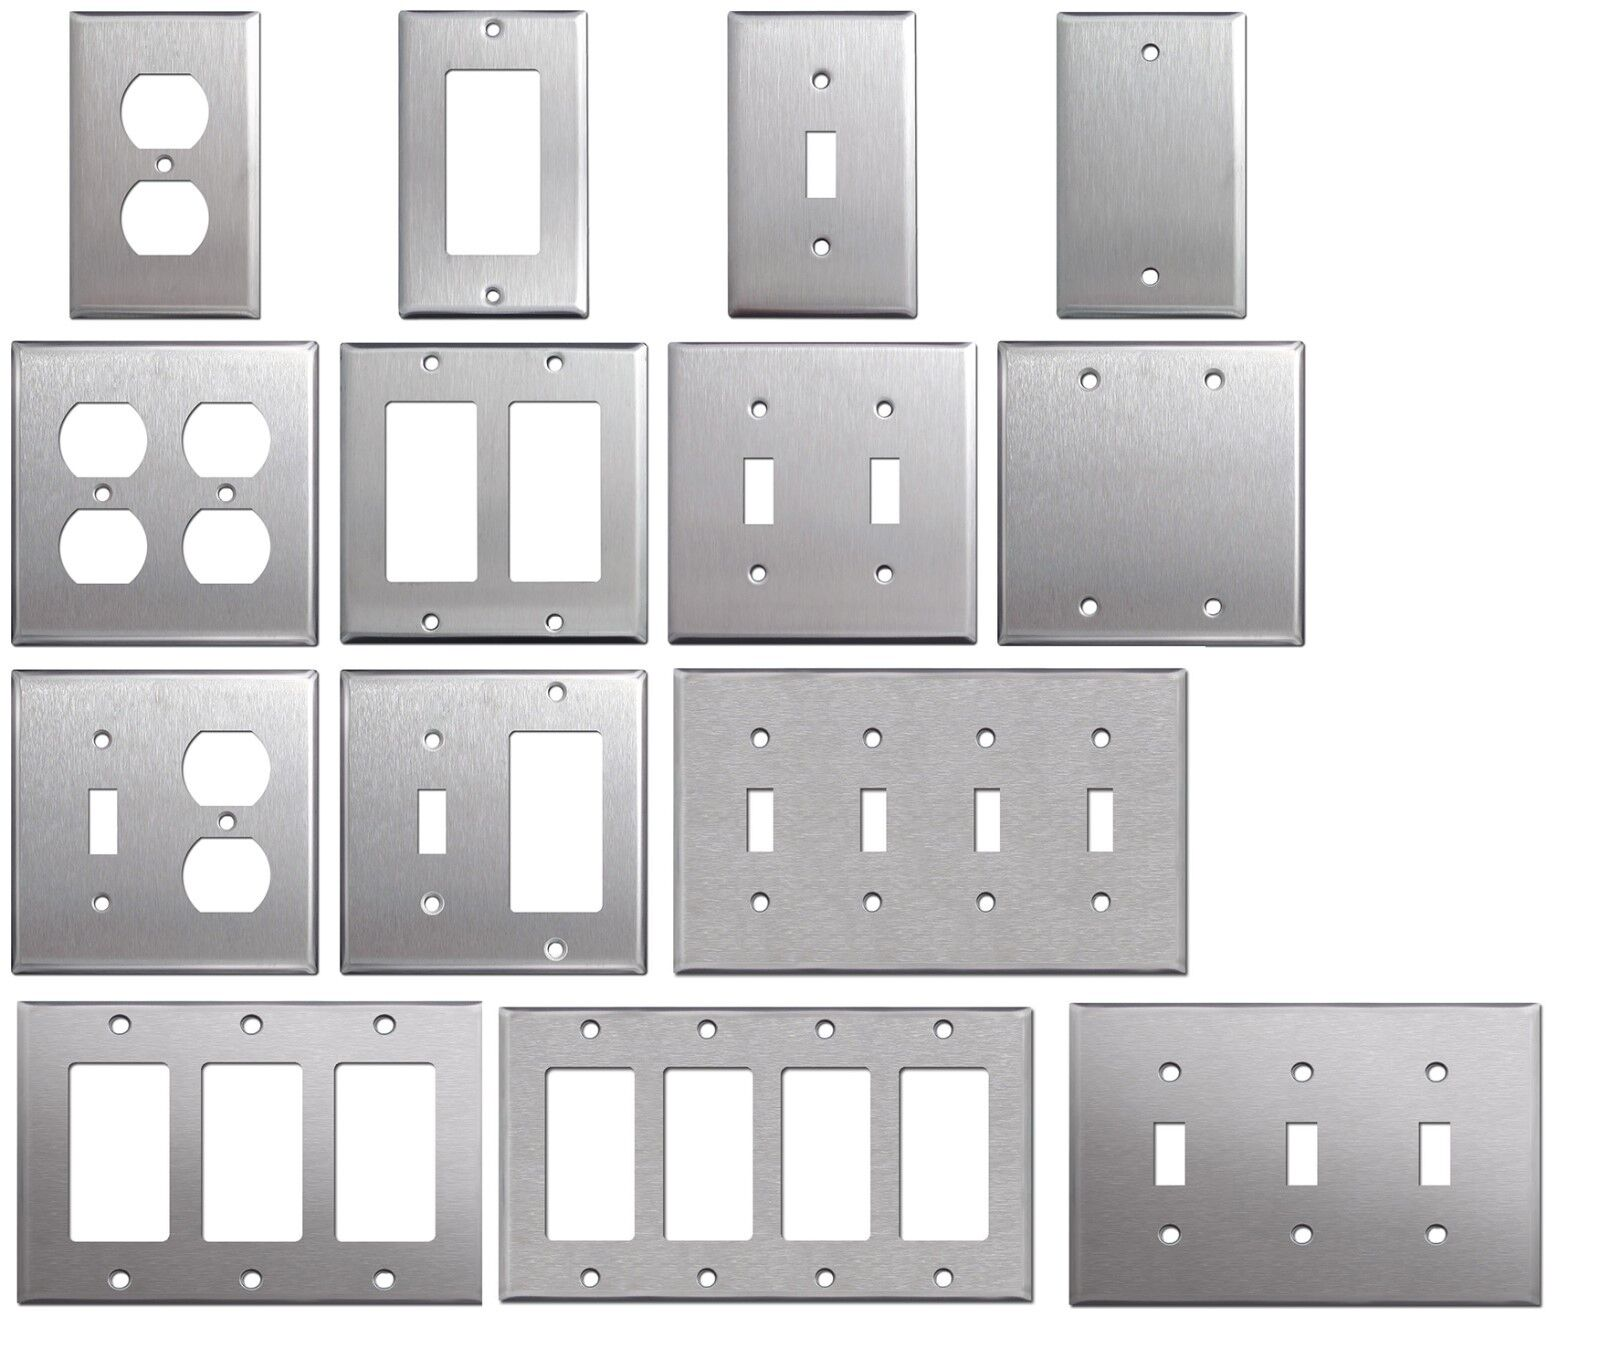 Picture of: Brushed Satin Nickel Stainless Steel Wall Covers Switch Plates Outlet Covers For Sale Online Ebay